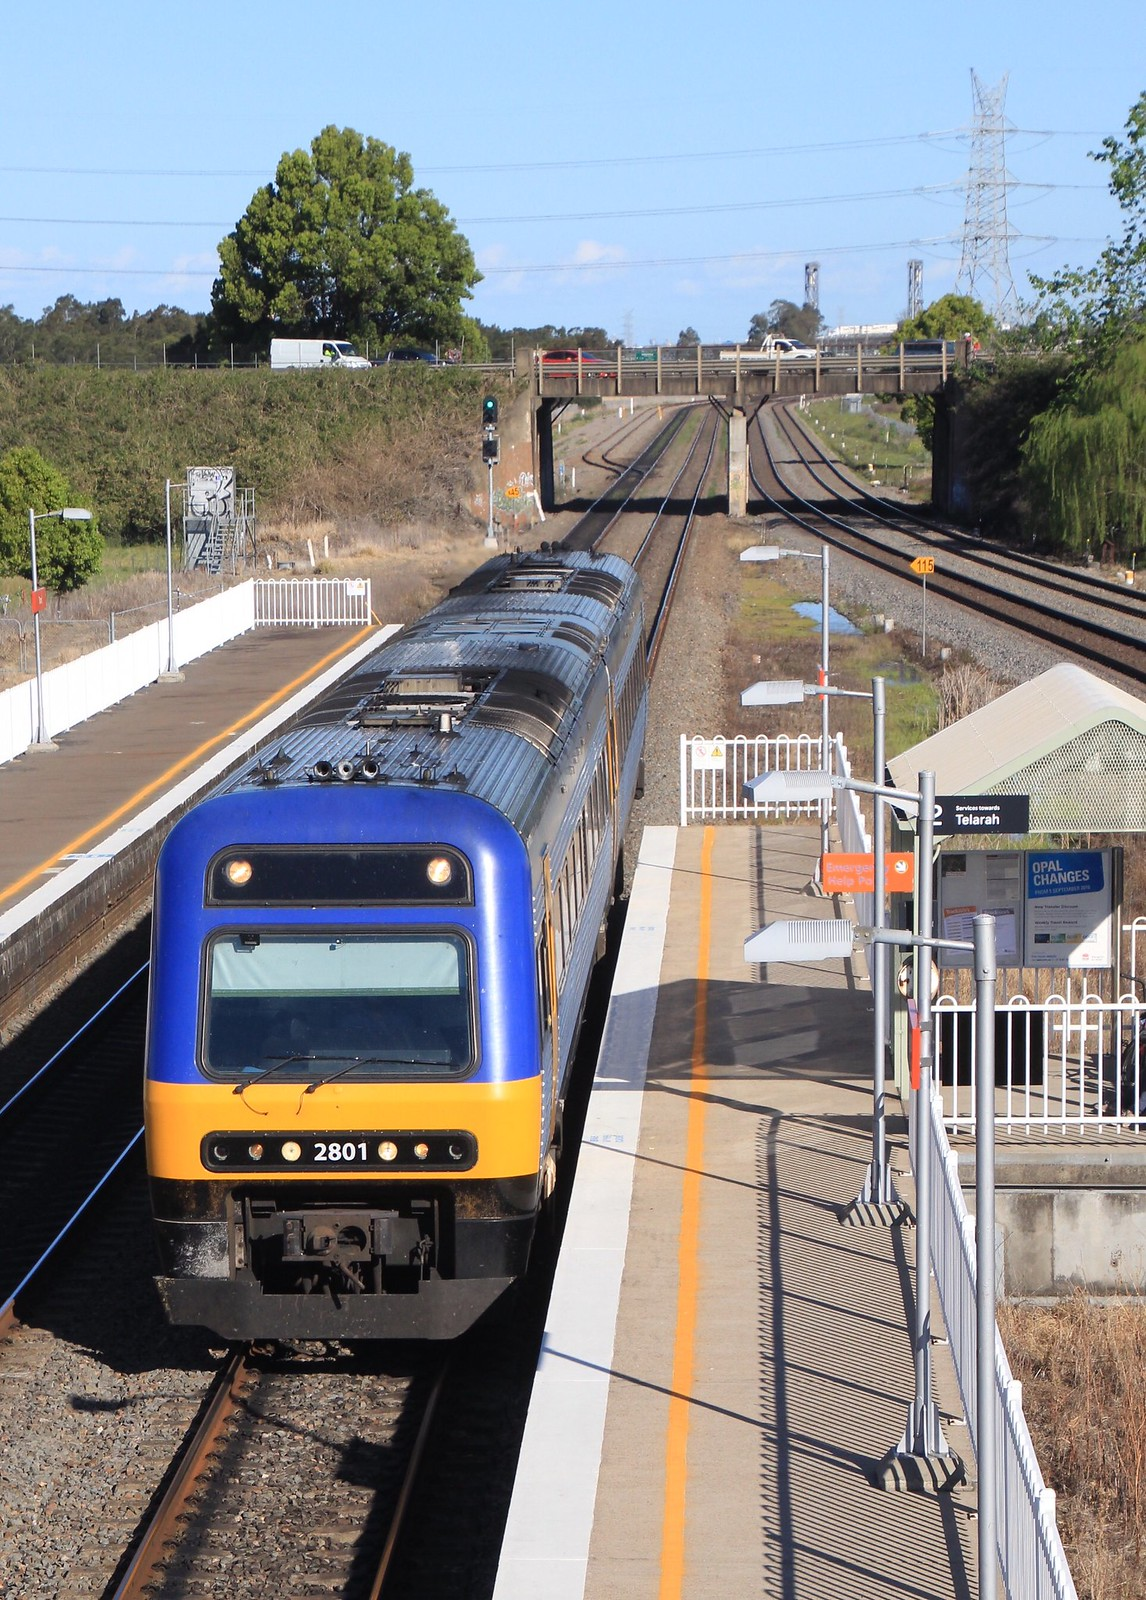 2801 arrives at Tarro with another commuter service to the Hunter region by bukk05